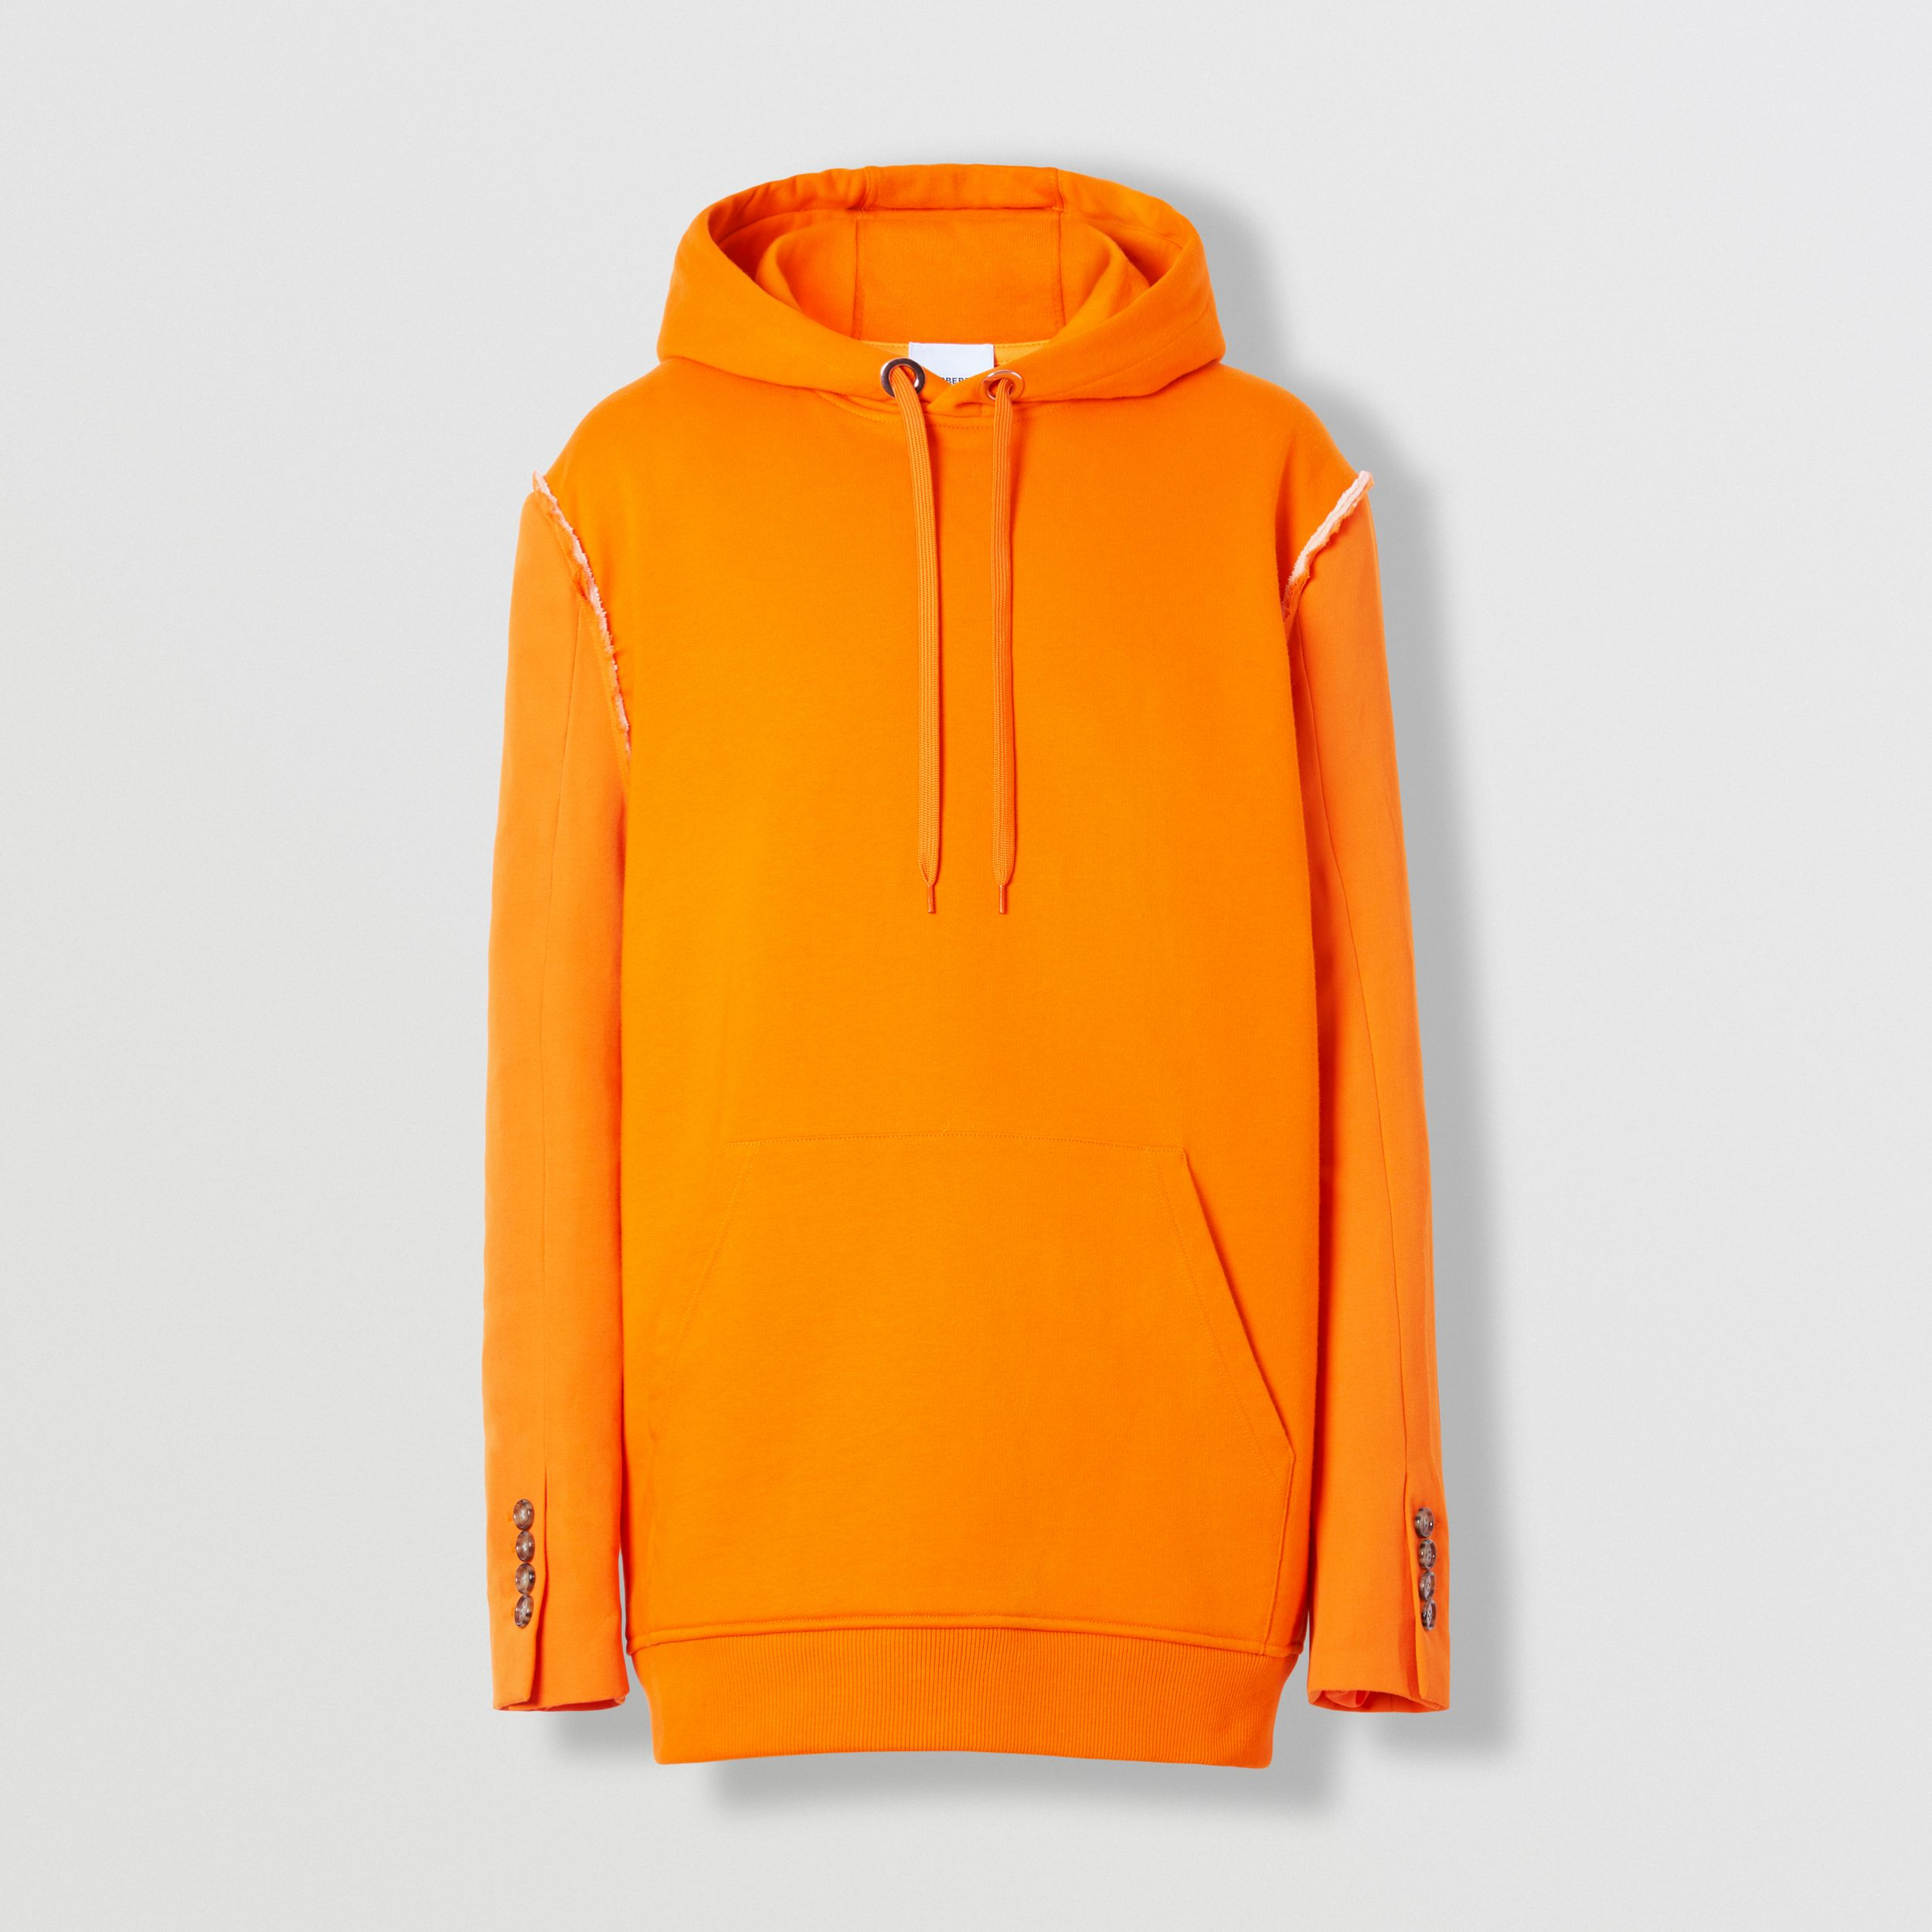 Cotton and Wool Reconstructed Hoodie in Deep Orange - Men | Burberry United Kingdom - 4